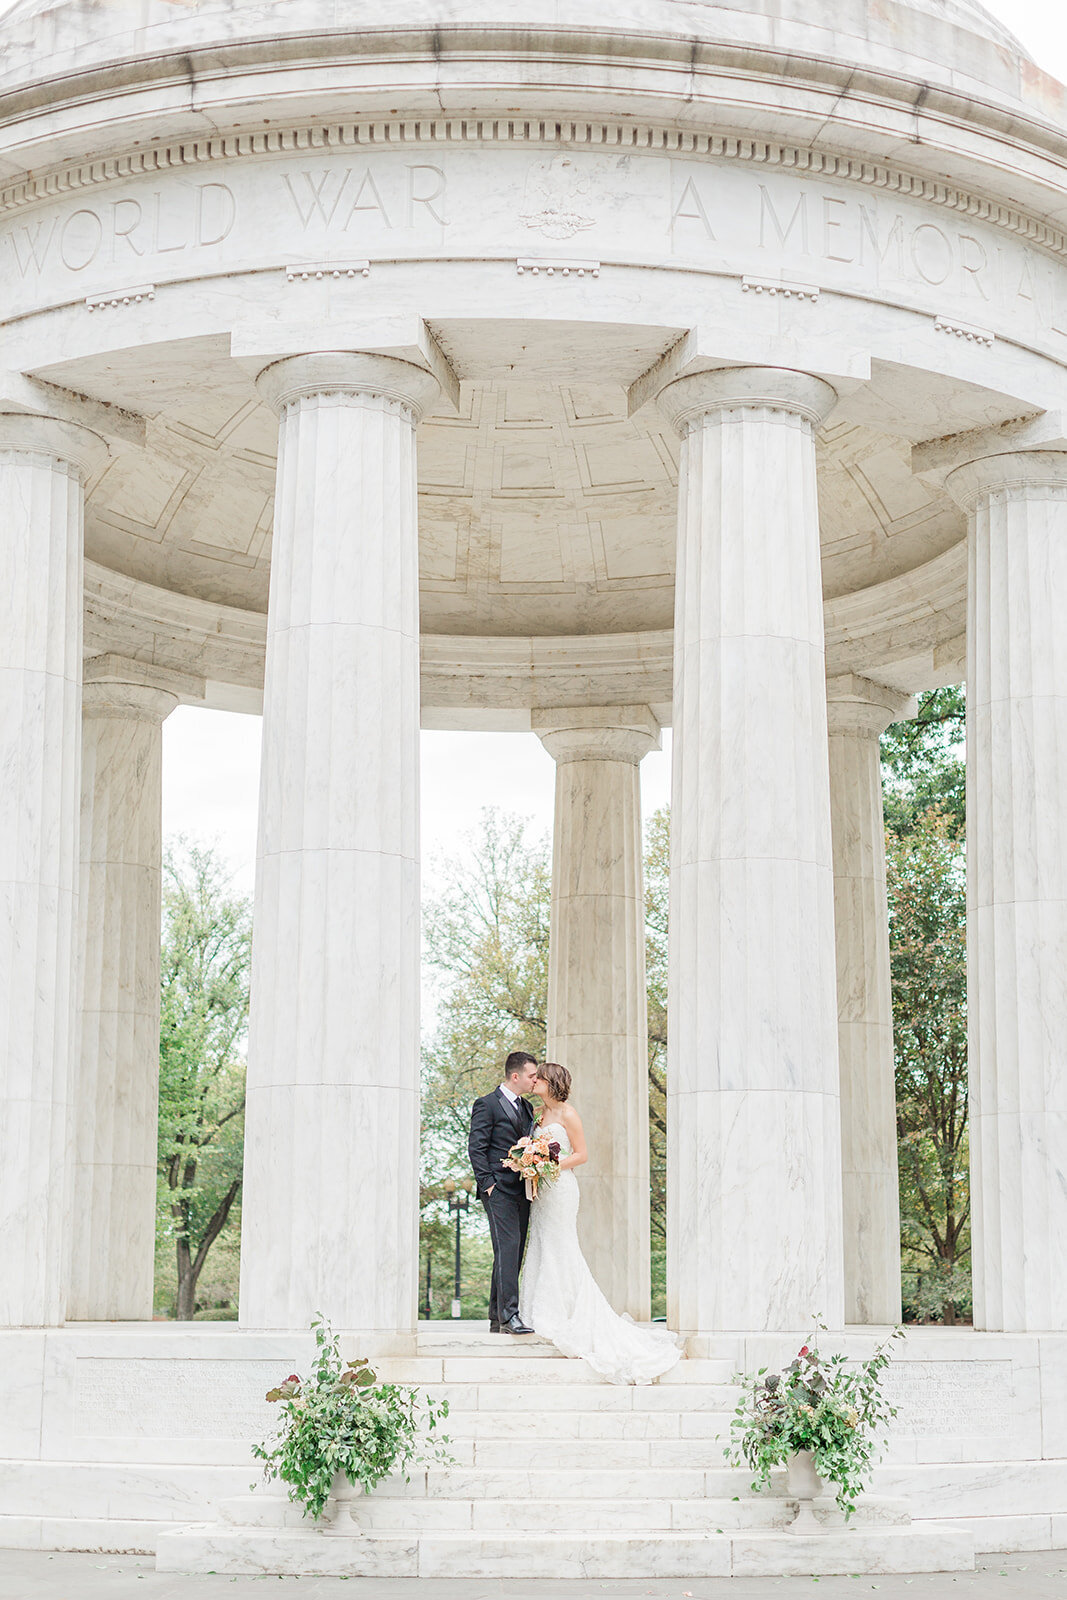 Shanna+Connor_DC_Oct2019_KelseyMariePhotography_SS-9962_websize